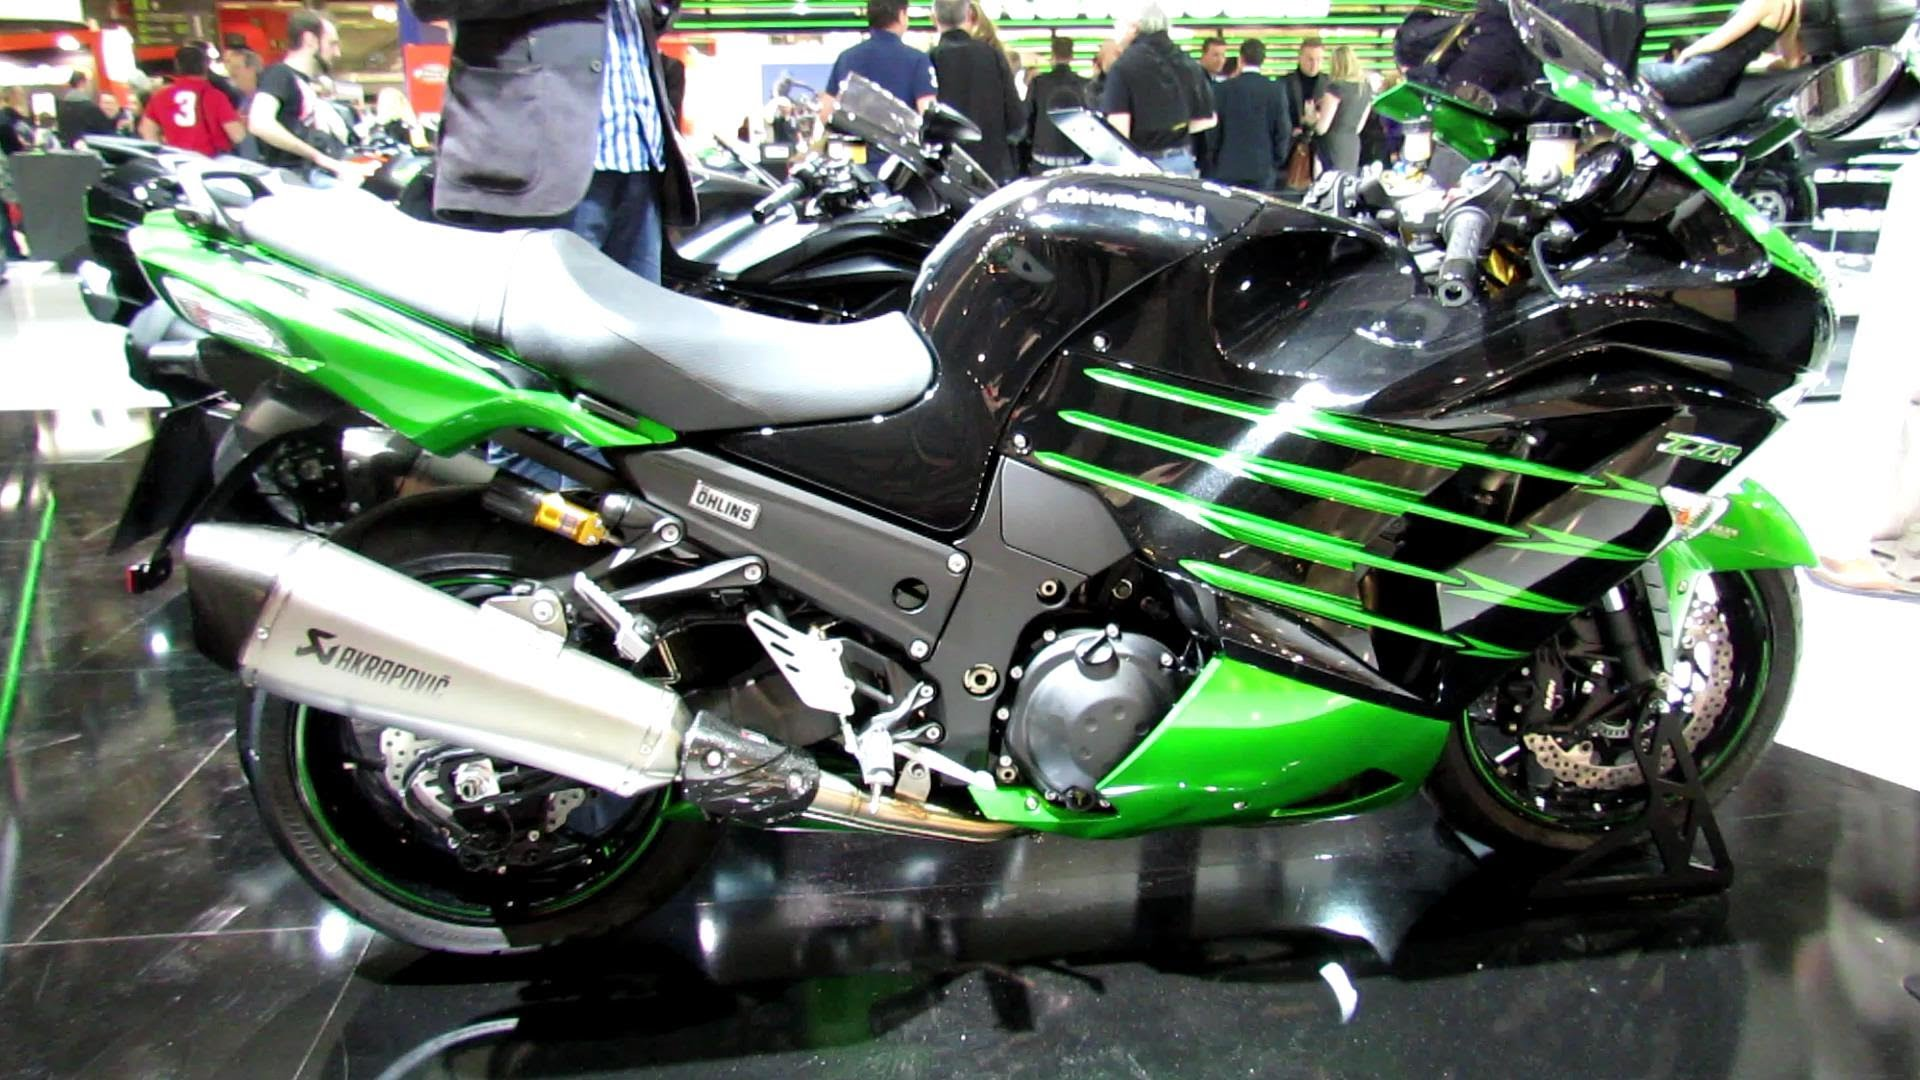 Kawasaki ZZR 1400SpecialEdition 2013 images #86522